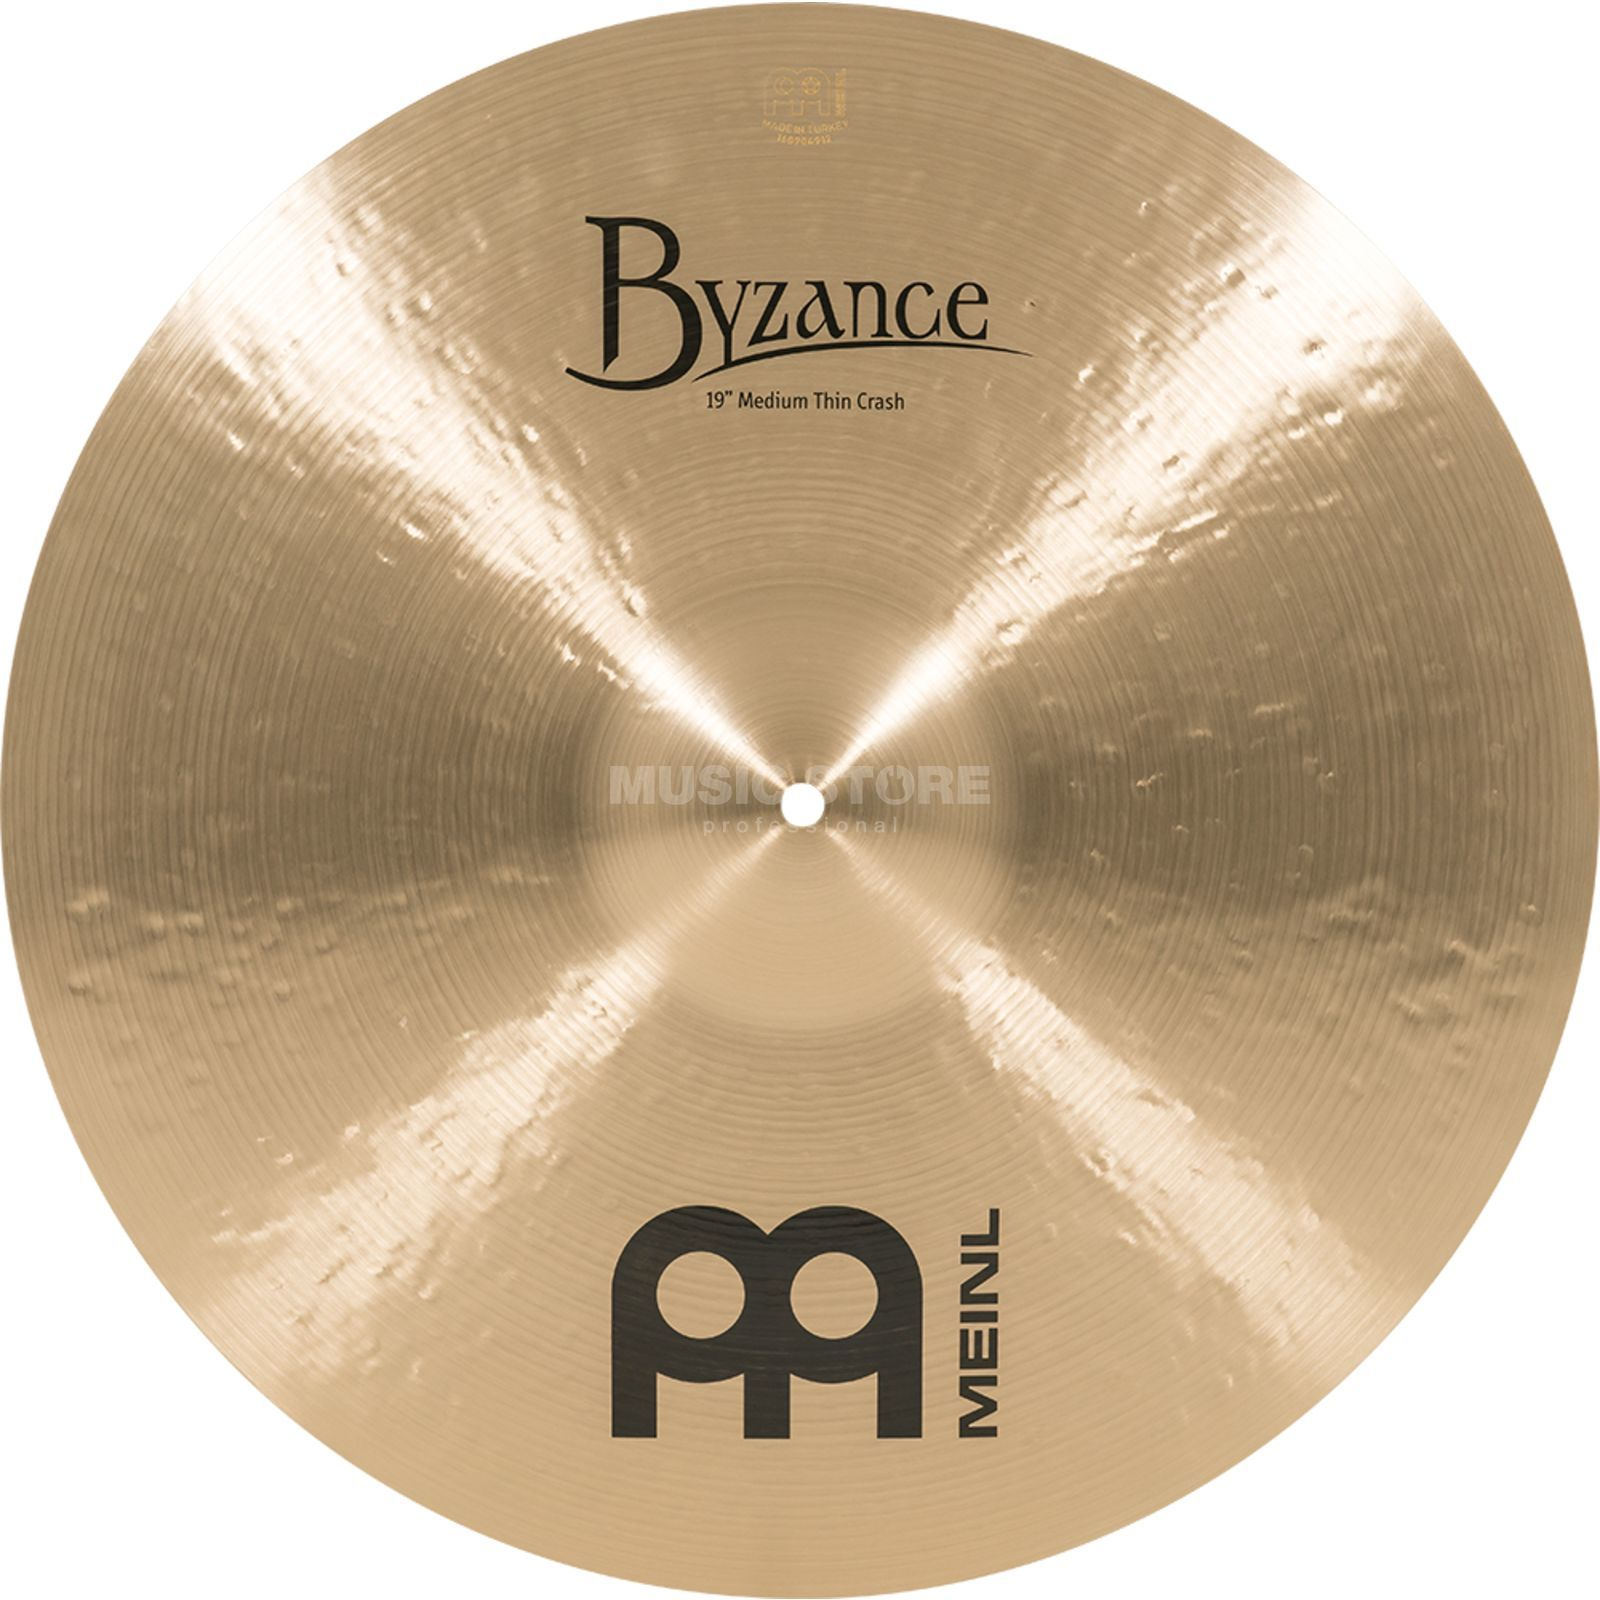 "Meinl Byzance Medium Thin Crash 19"" B19 mTC,Finition traditionnelle Image du produit"